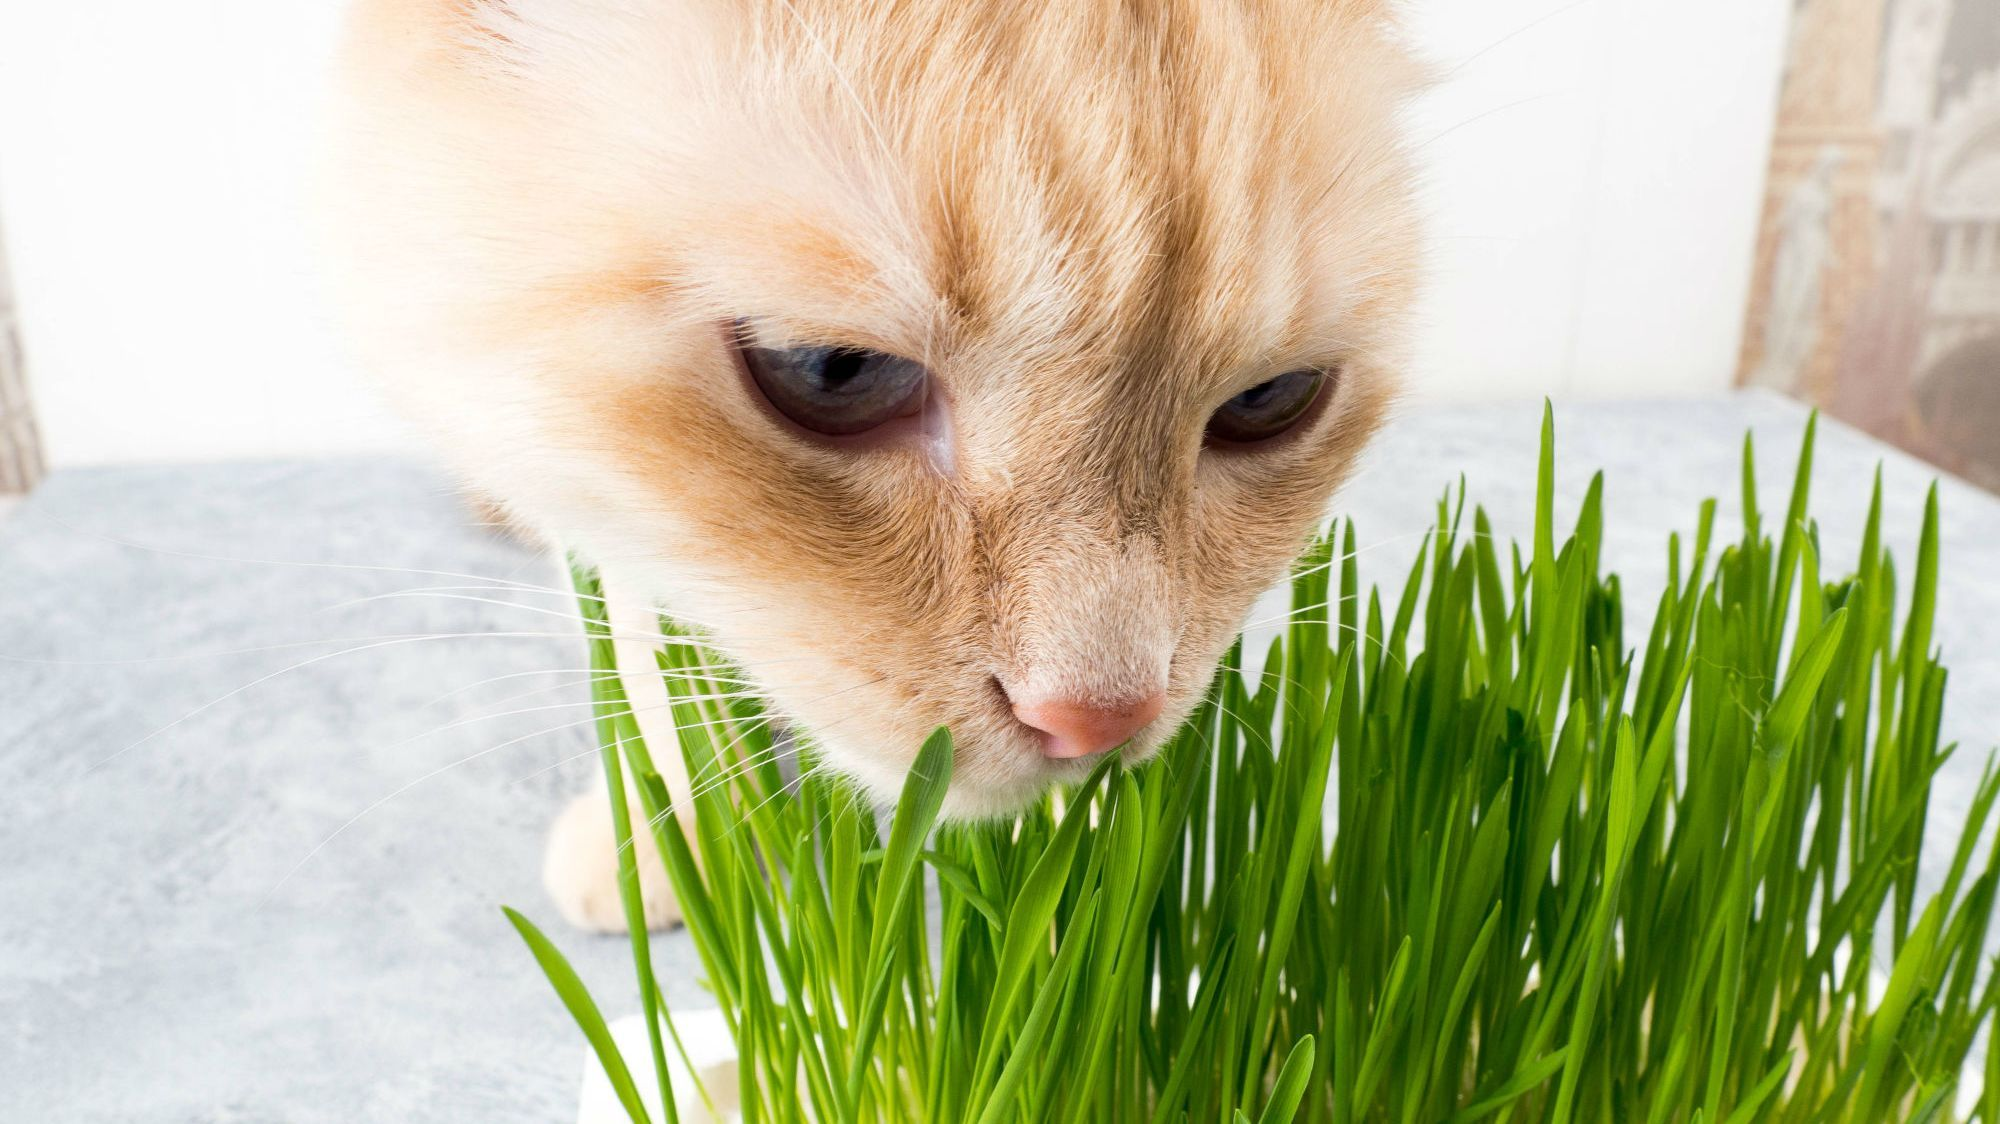 Why Do Cats Eat Grass? Scientists Might Have Figured It